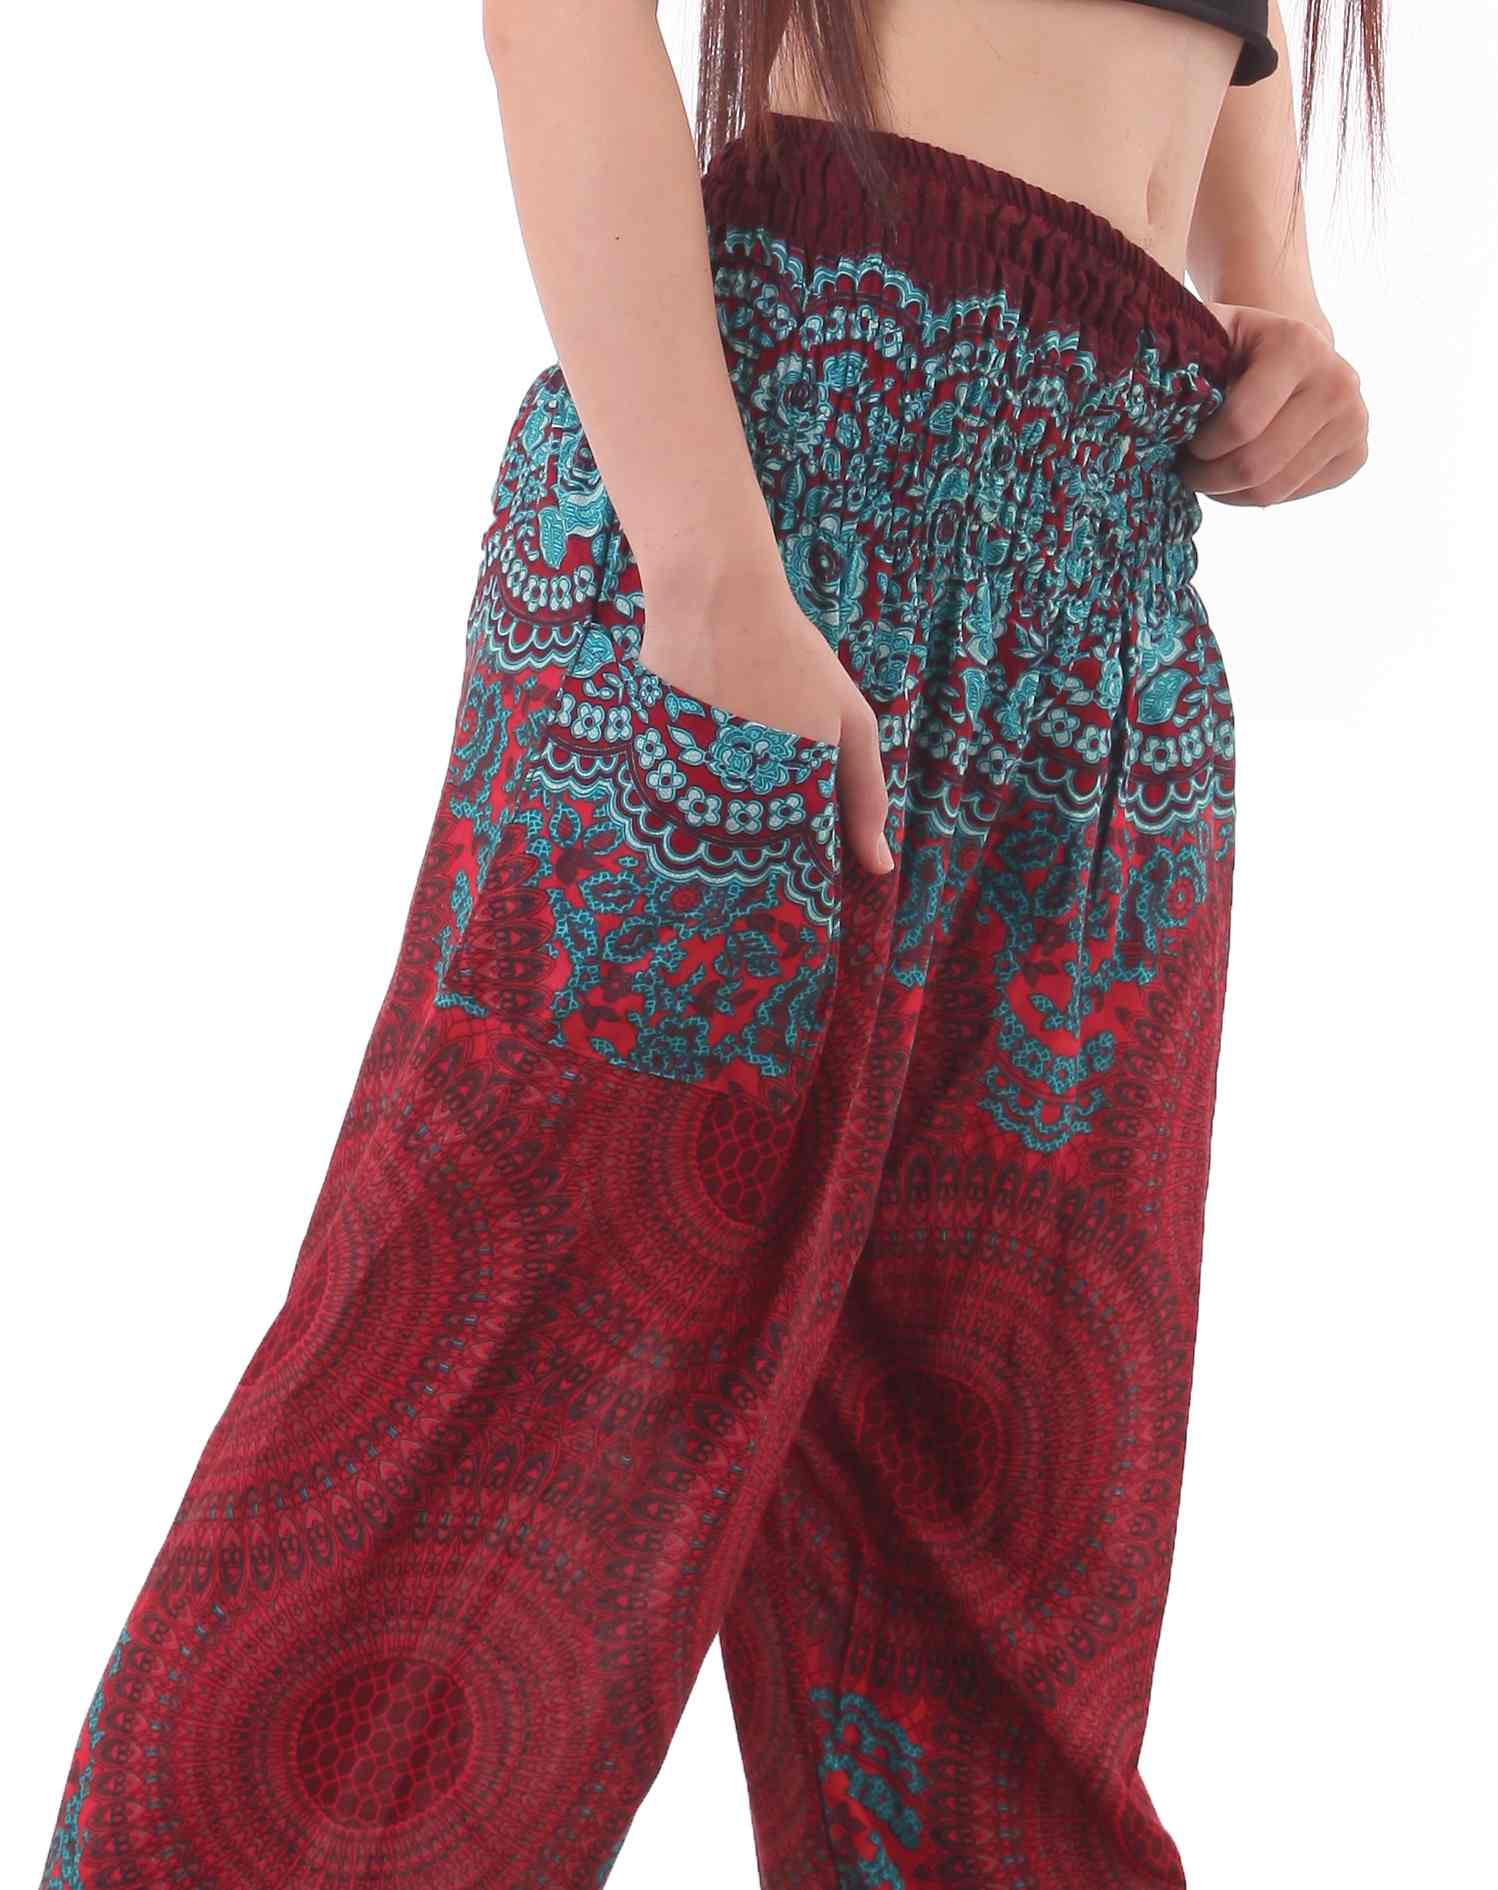 Plus Size Mandala Harem Hippie Pants in Red and Turquoise